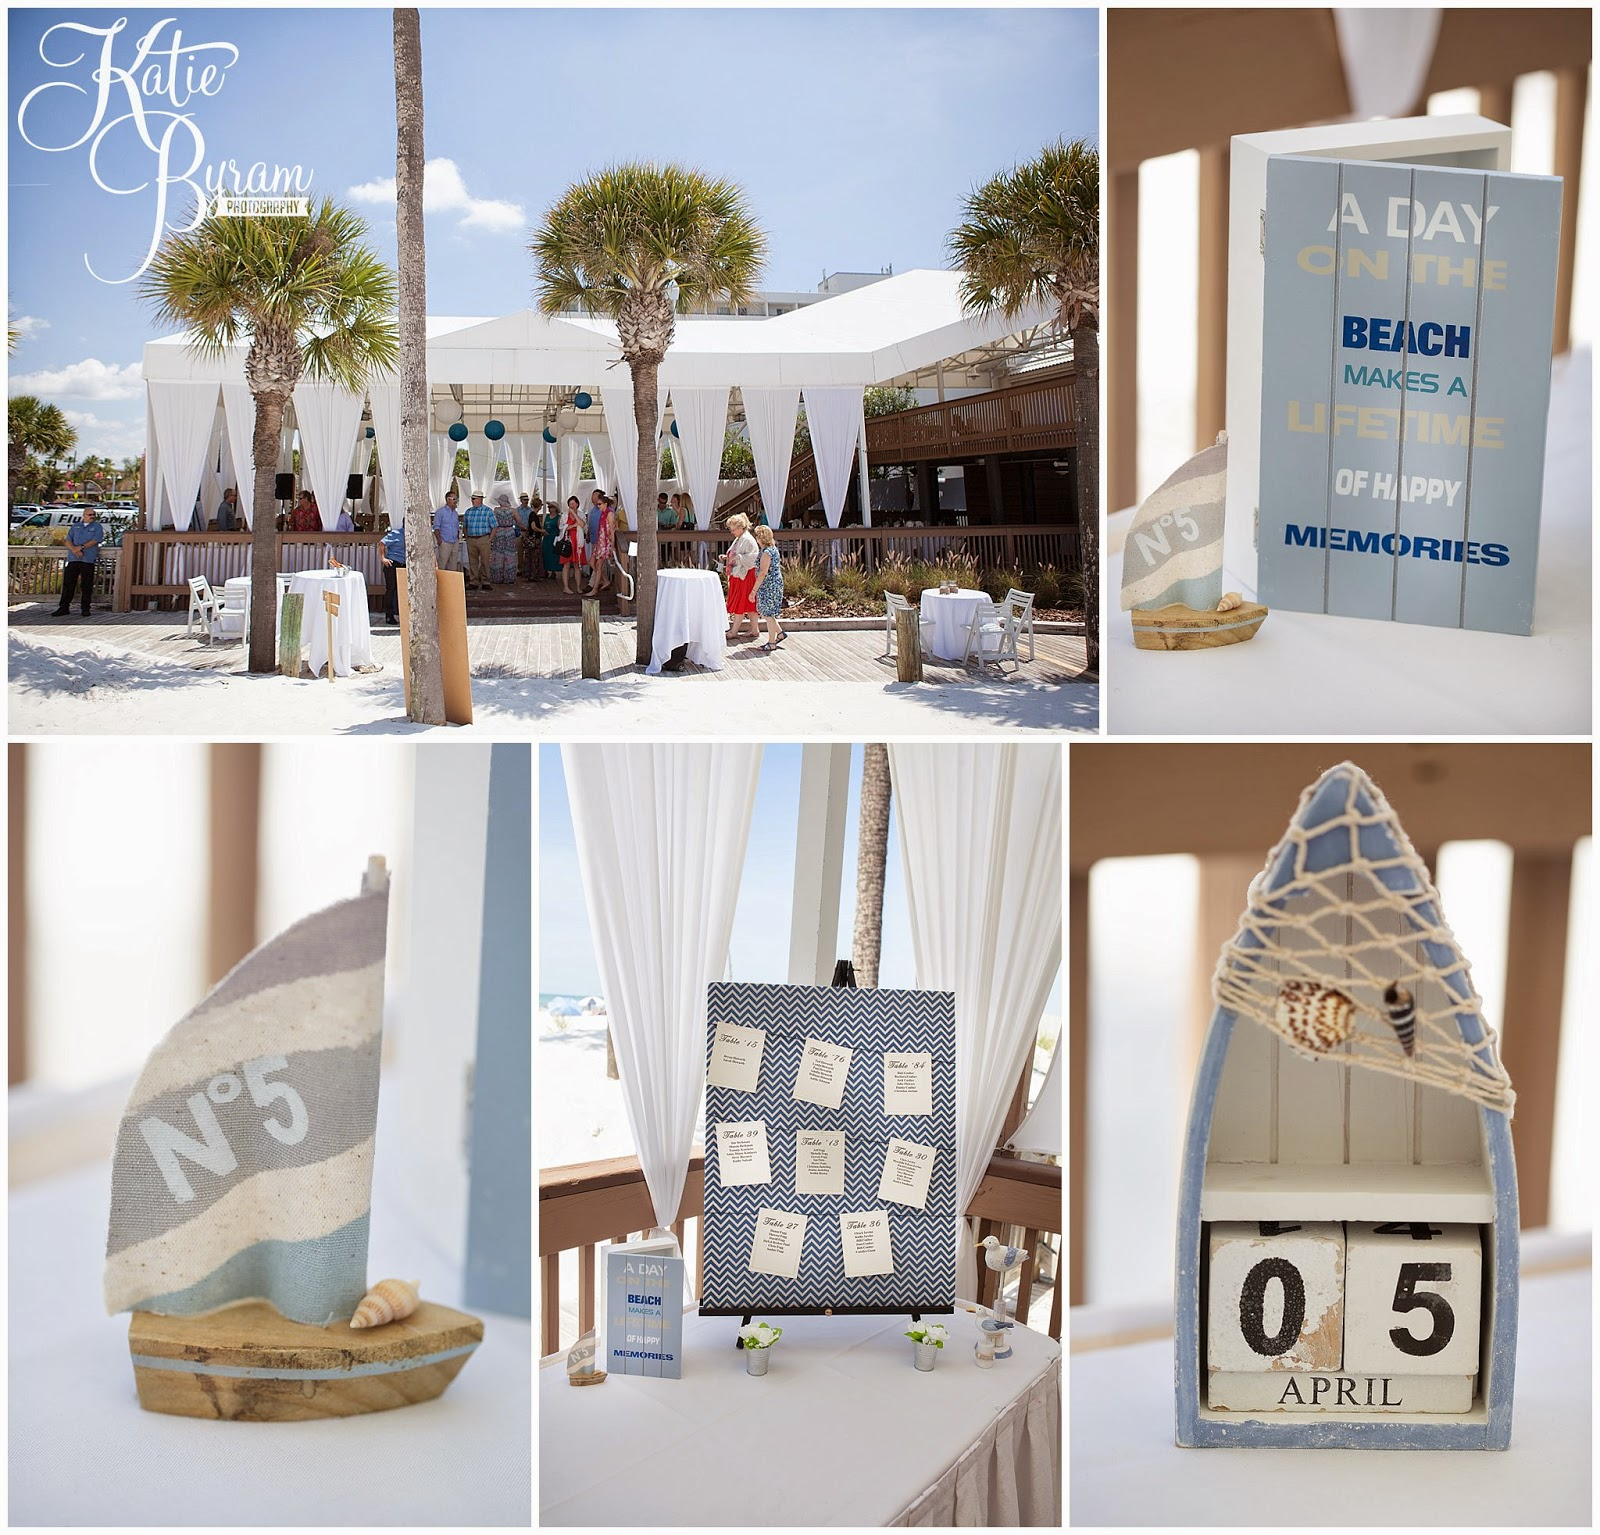 beach wedding, wedding centrepieces, beach wedding decorations, destination wedding, clearwater beach wedding, hilton clearwater beach wedding, katie byram photography, florida wedding